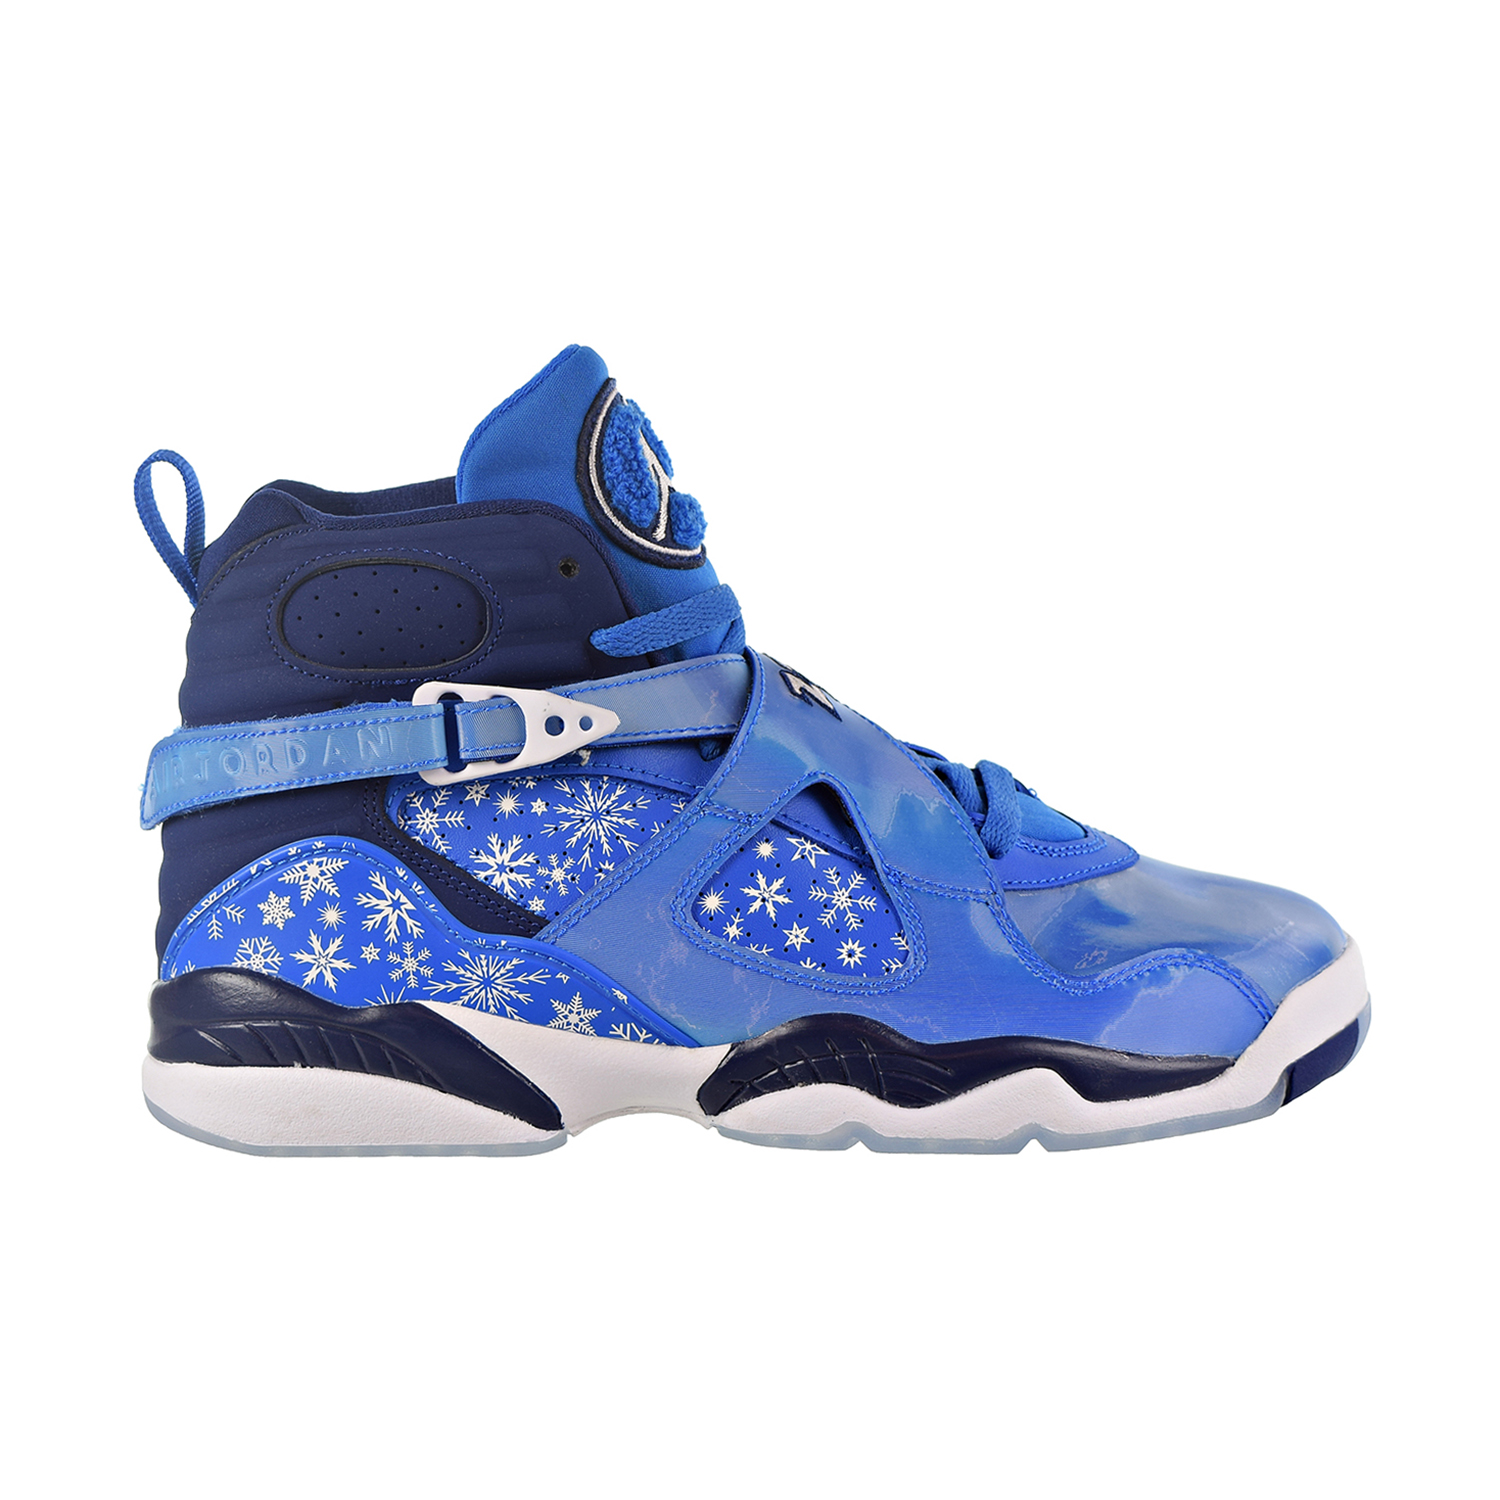 87abe9d491571 Details about Nike Air Jordan 8 Retro Big Kid's Shoe Cobalt  Blaze/Blue/Void/White 305368-400